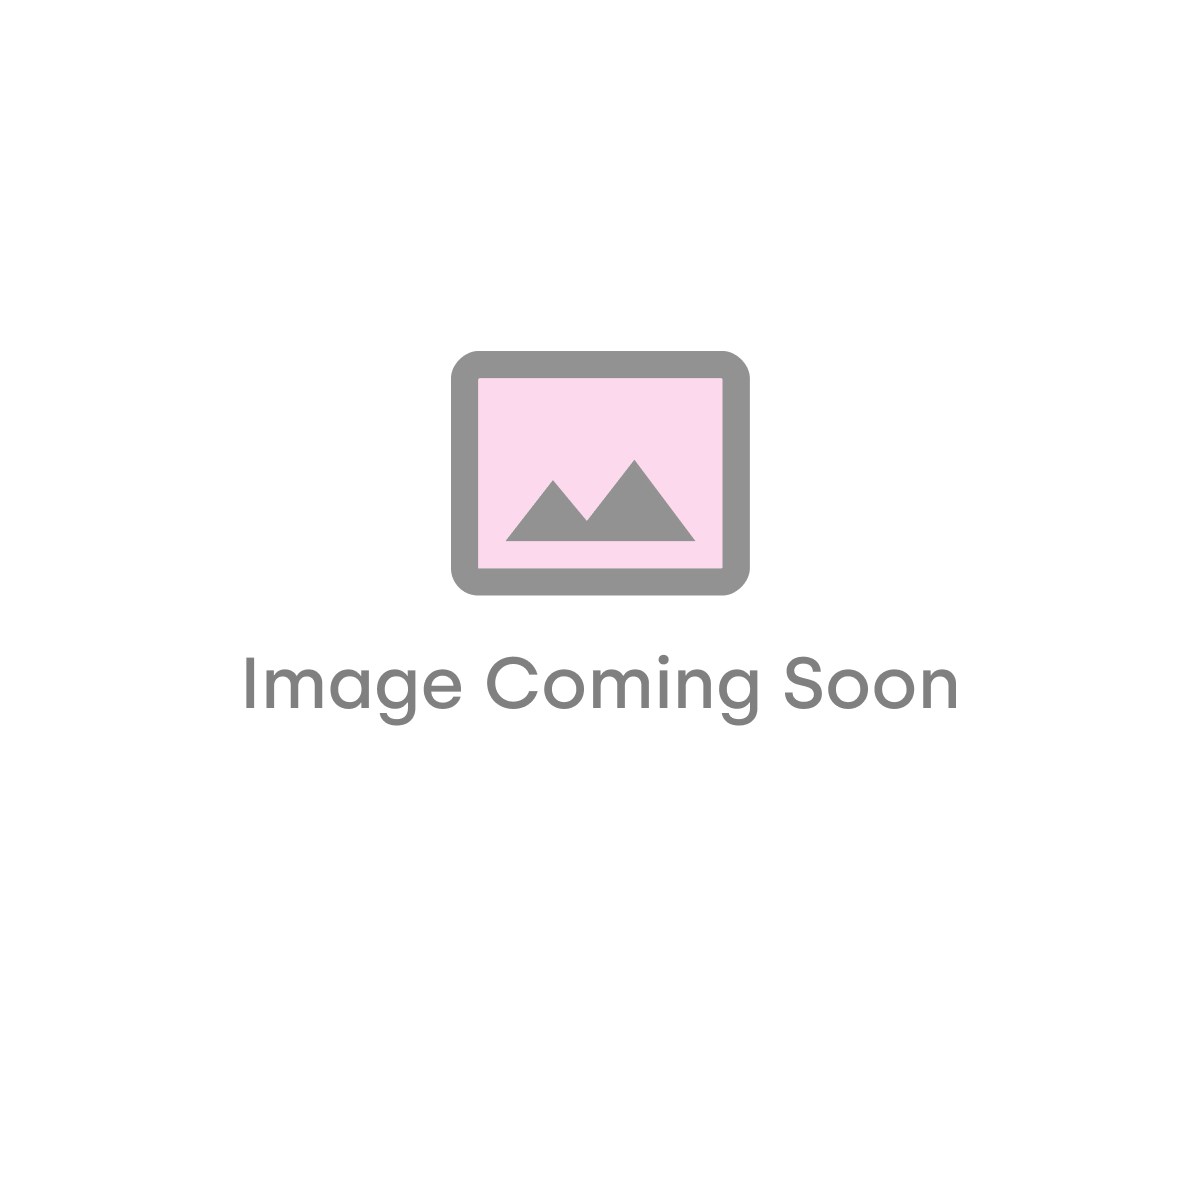 Eliseo Ricci Instant Boiling Water Kitchen Tap - Brushed Nickel - 14475